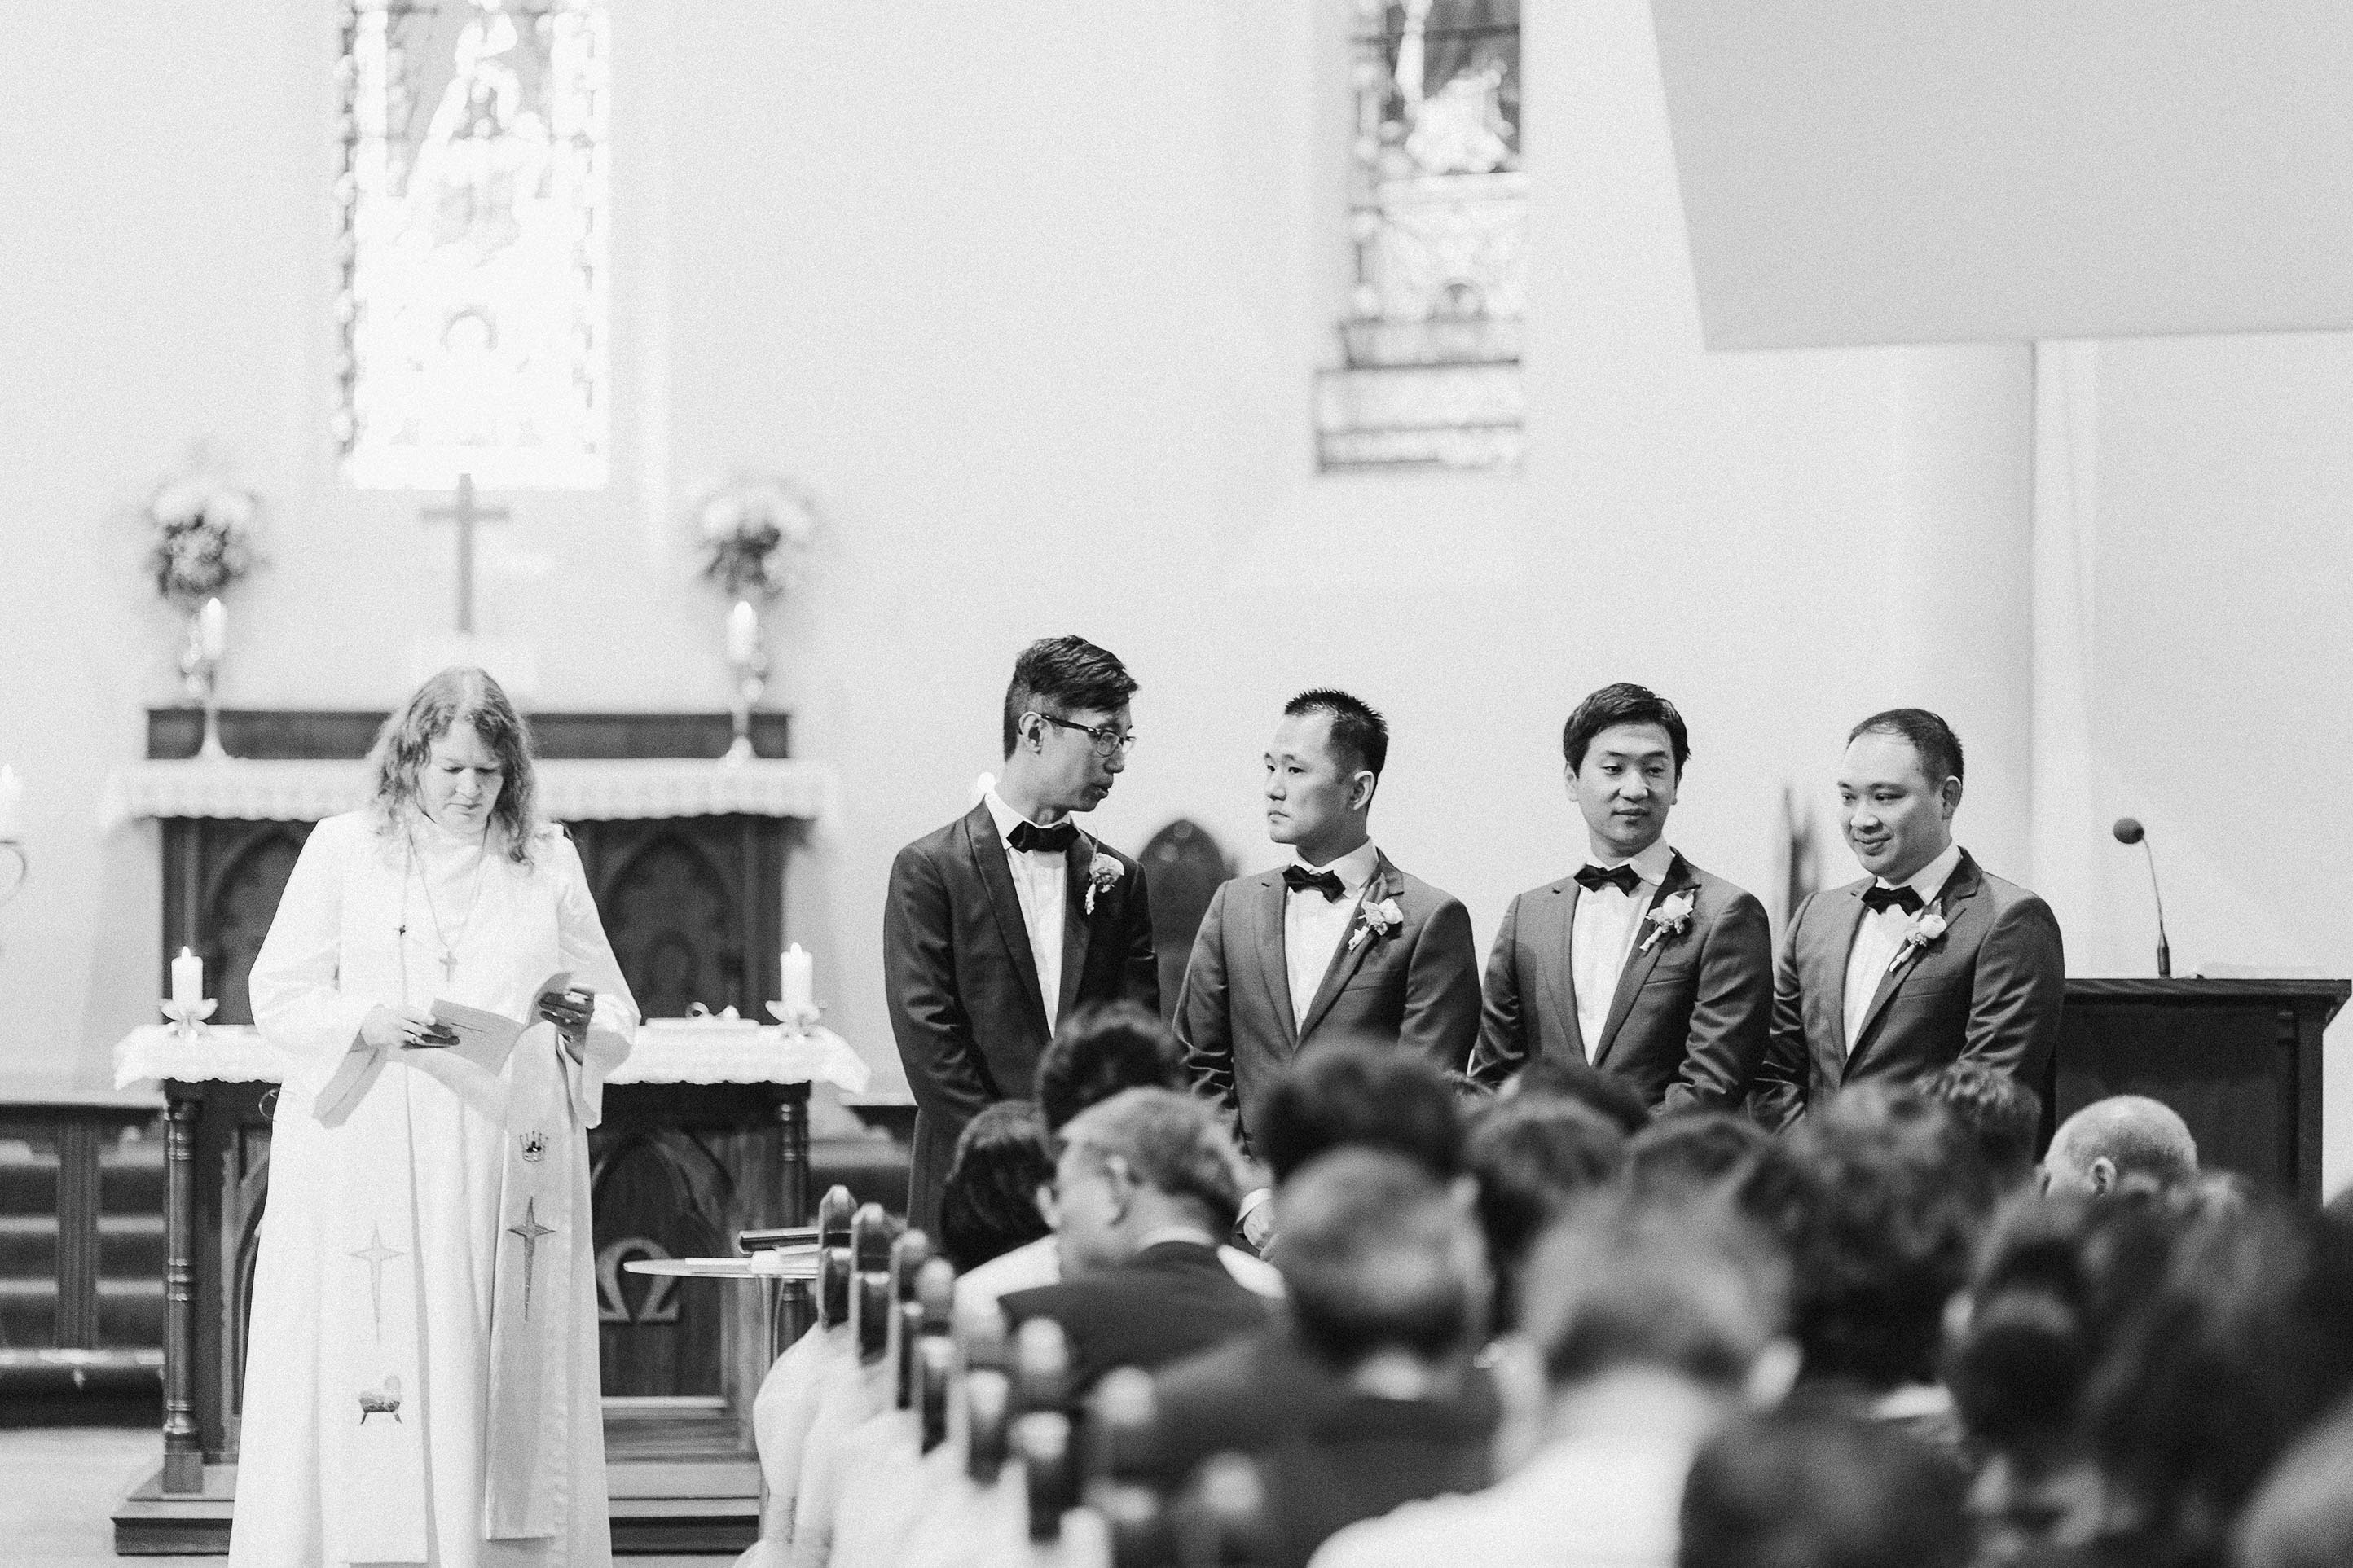 Melbourne-caufield-north-wedding-church-groomsmen